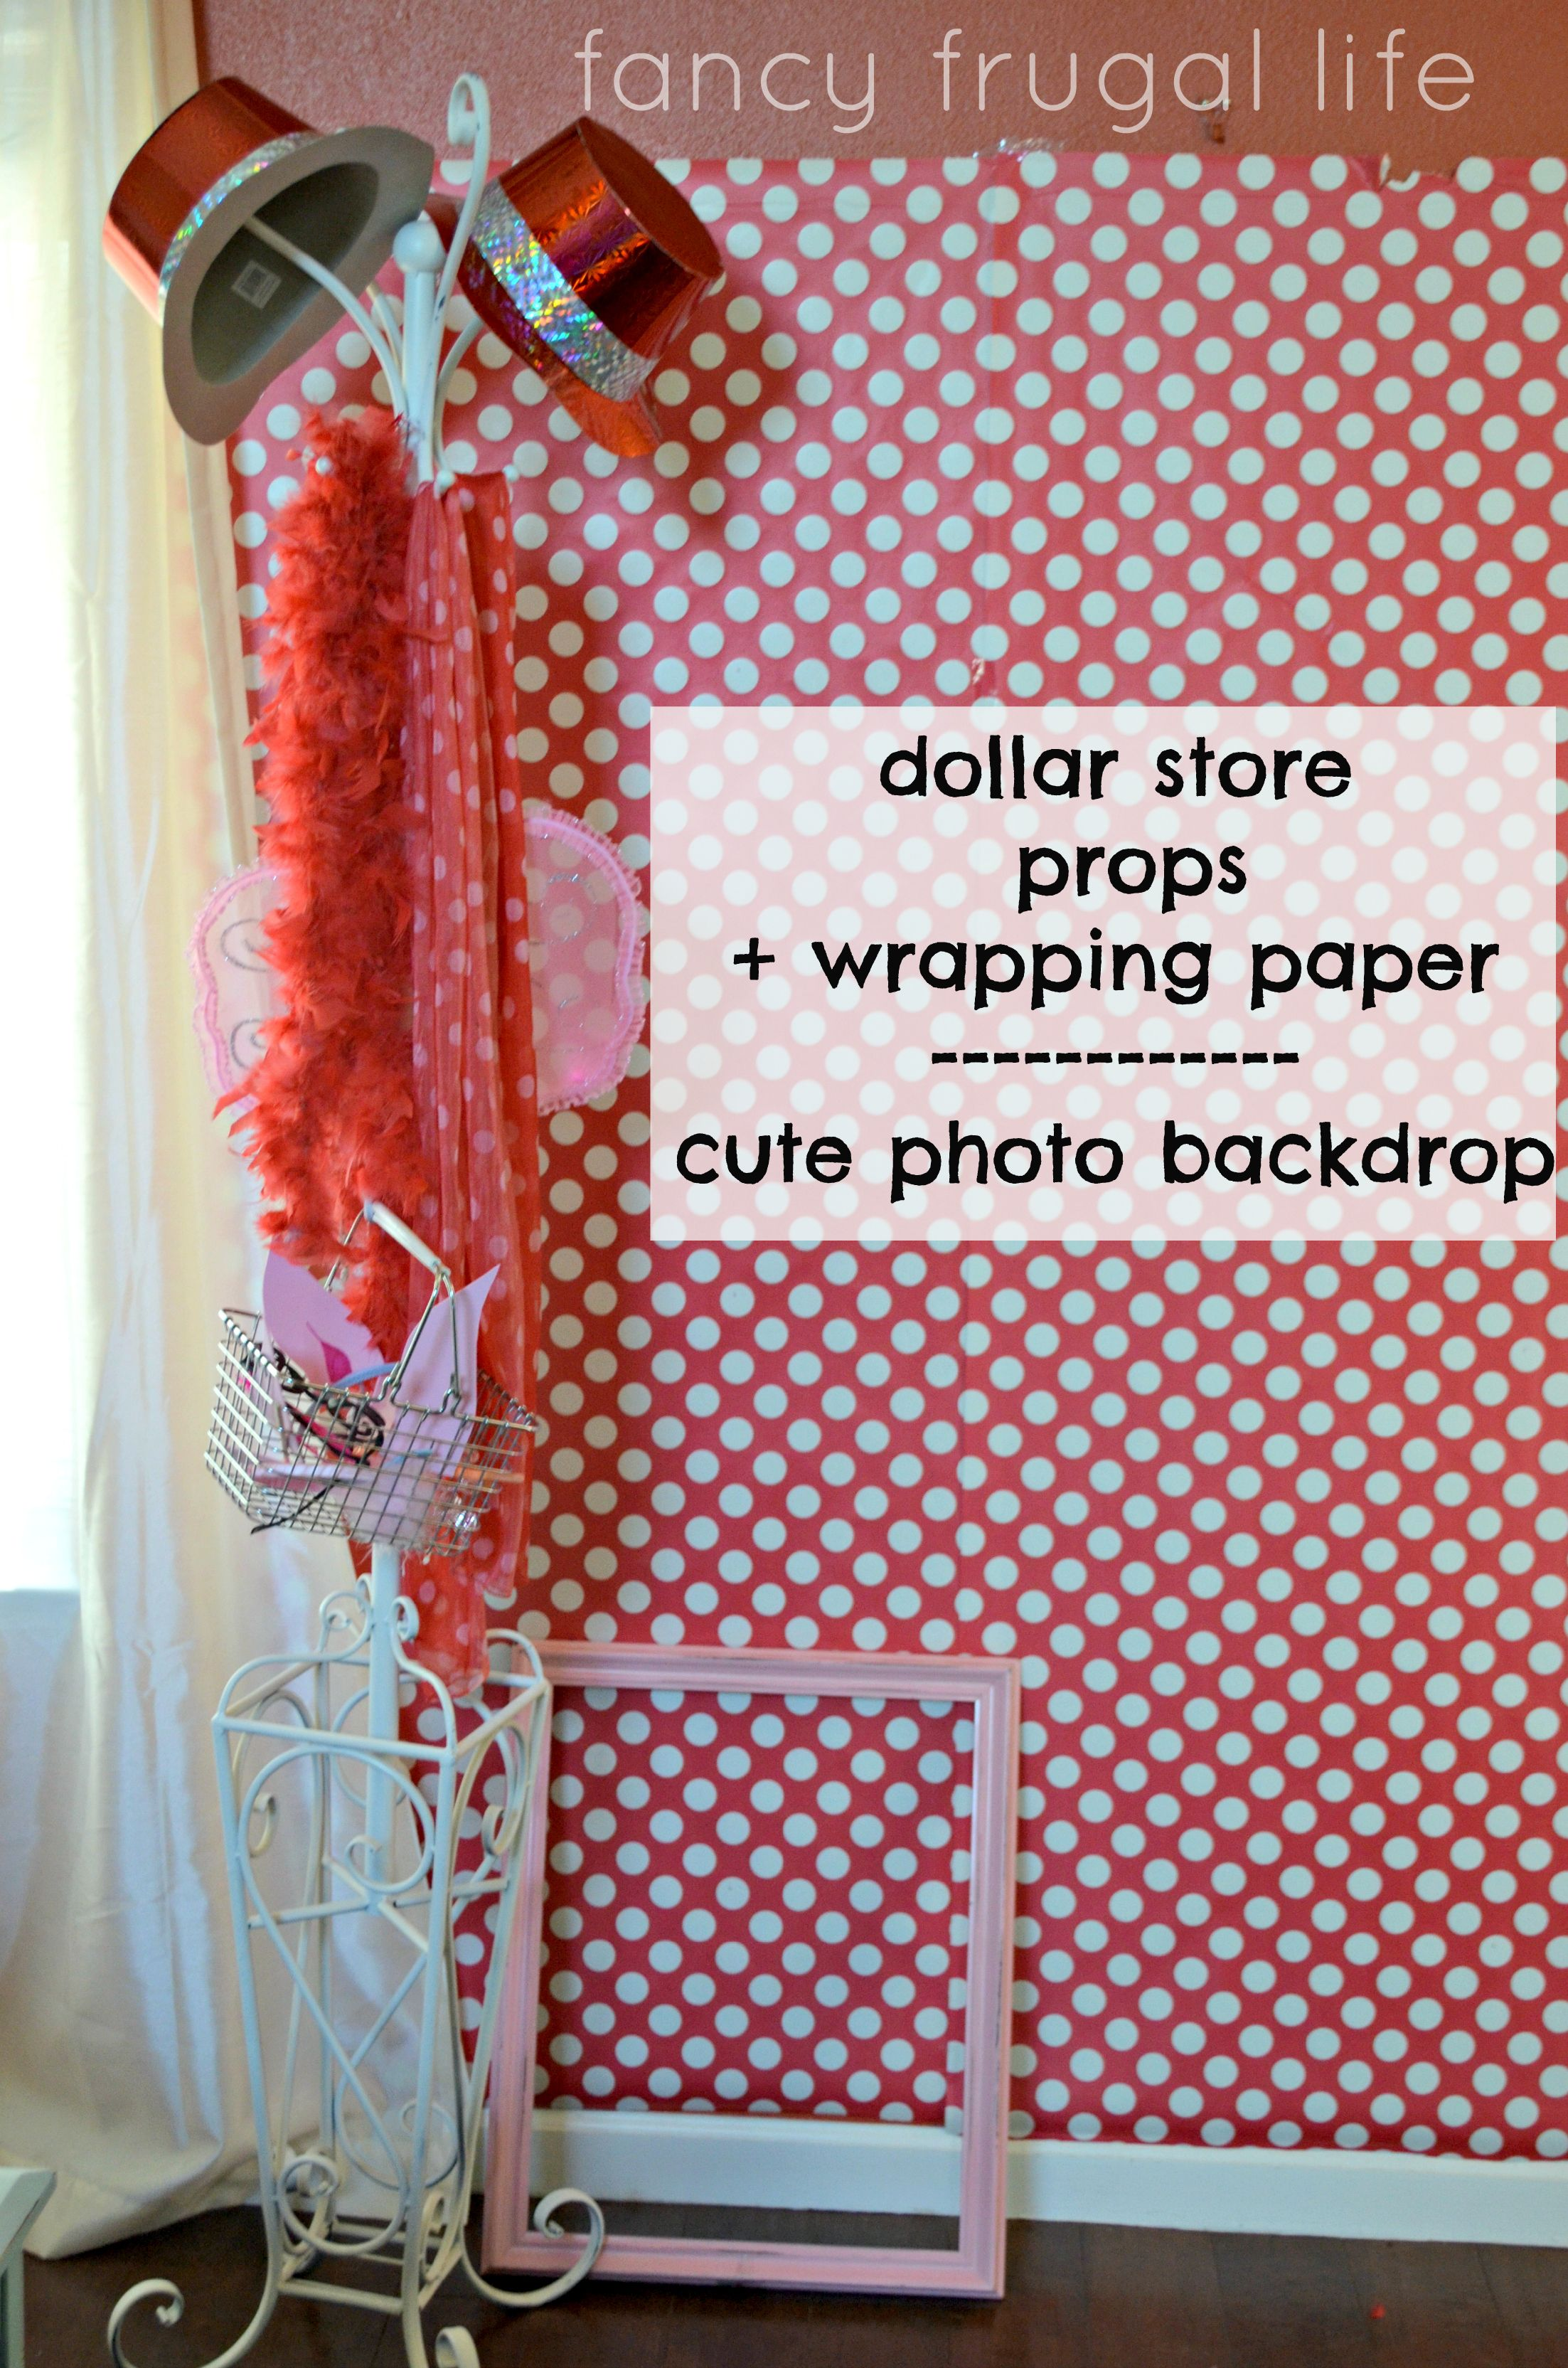 Christmas Picture Backdrop Ideas Wrapping Paper Dollar Store Photo Propsfun Party Photo Backdrop